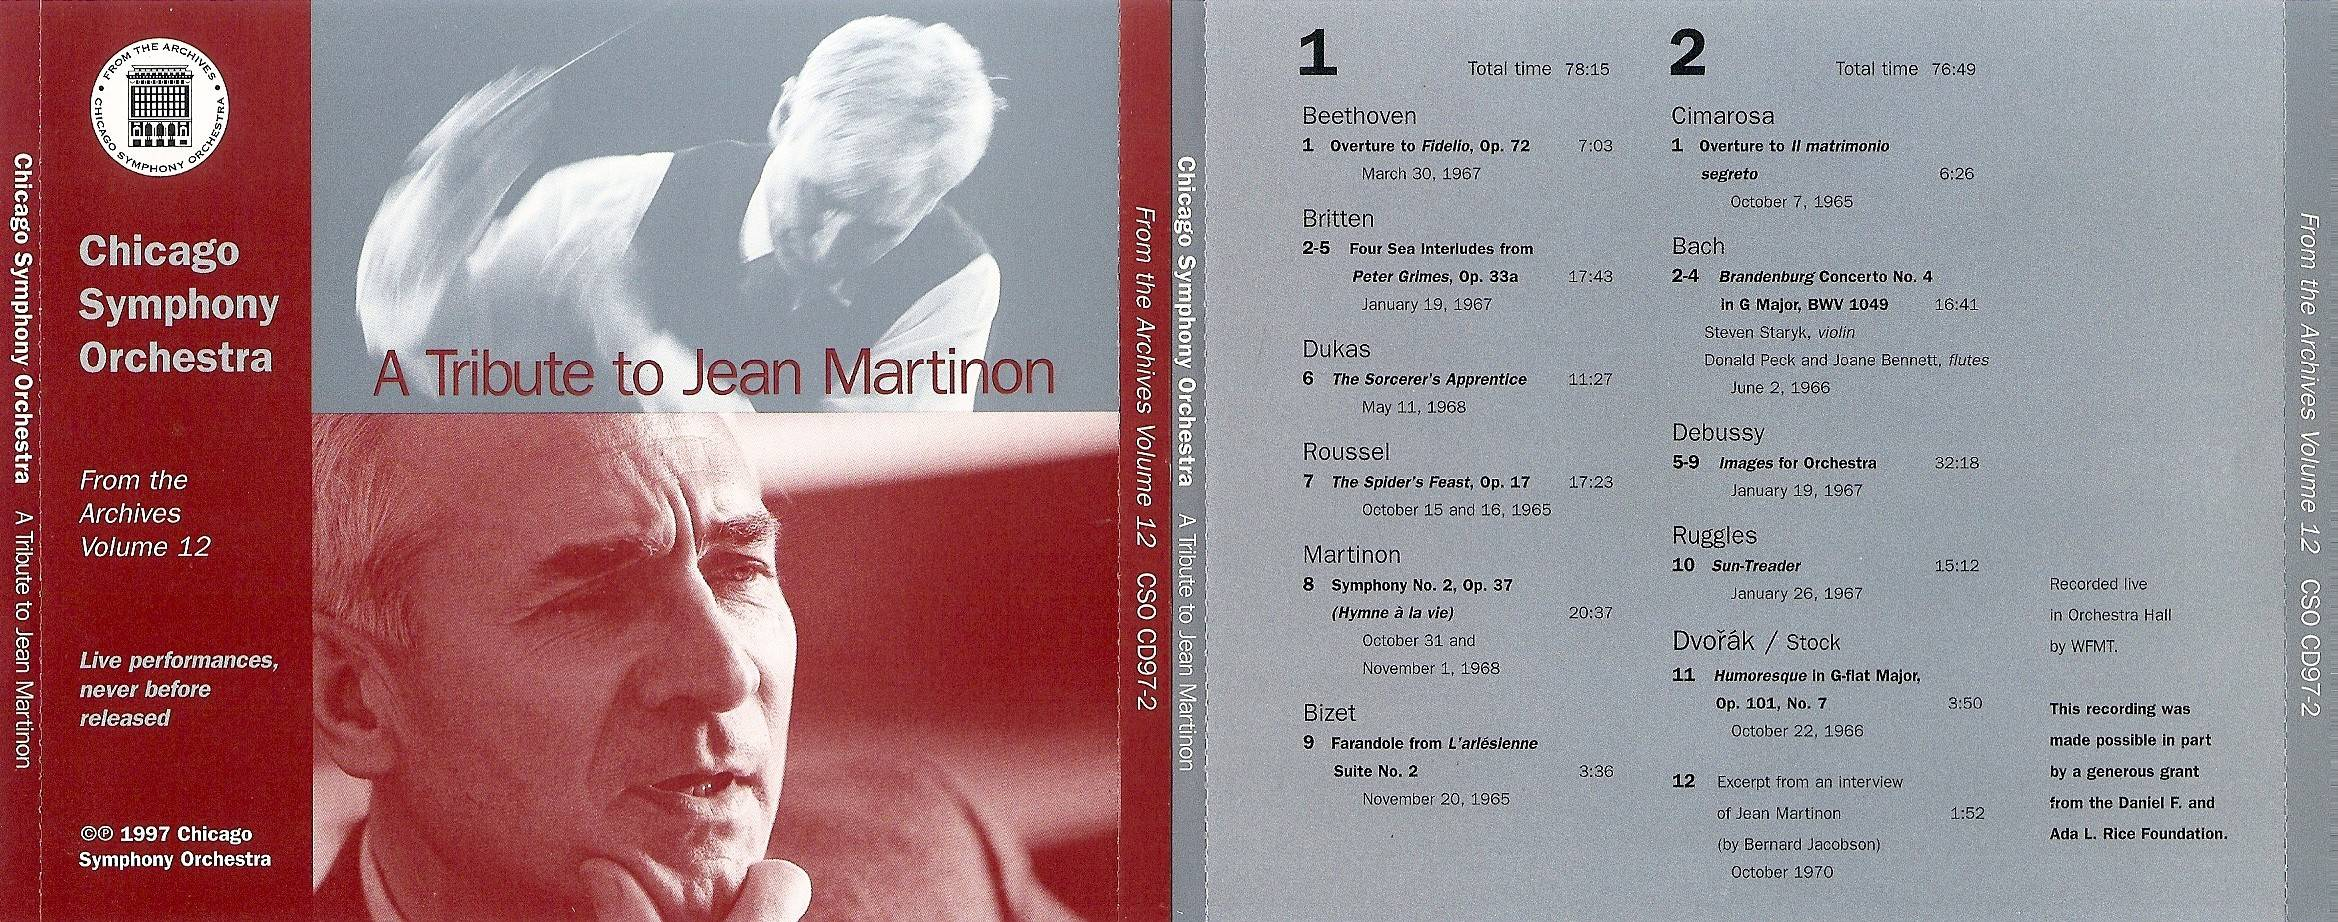 Chicago Symphony Orchestra - From The Archives, Vol.12: A Tribute to Jean Martinon, 2-CD set (1997)